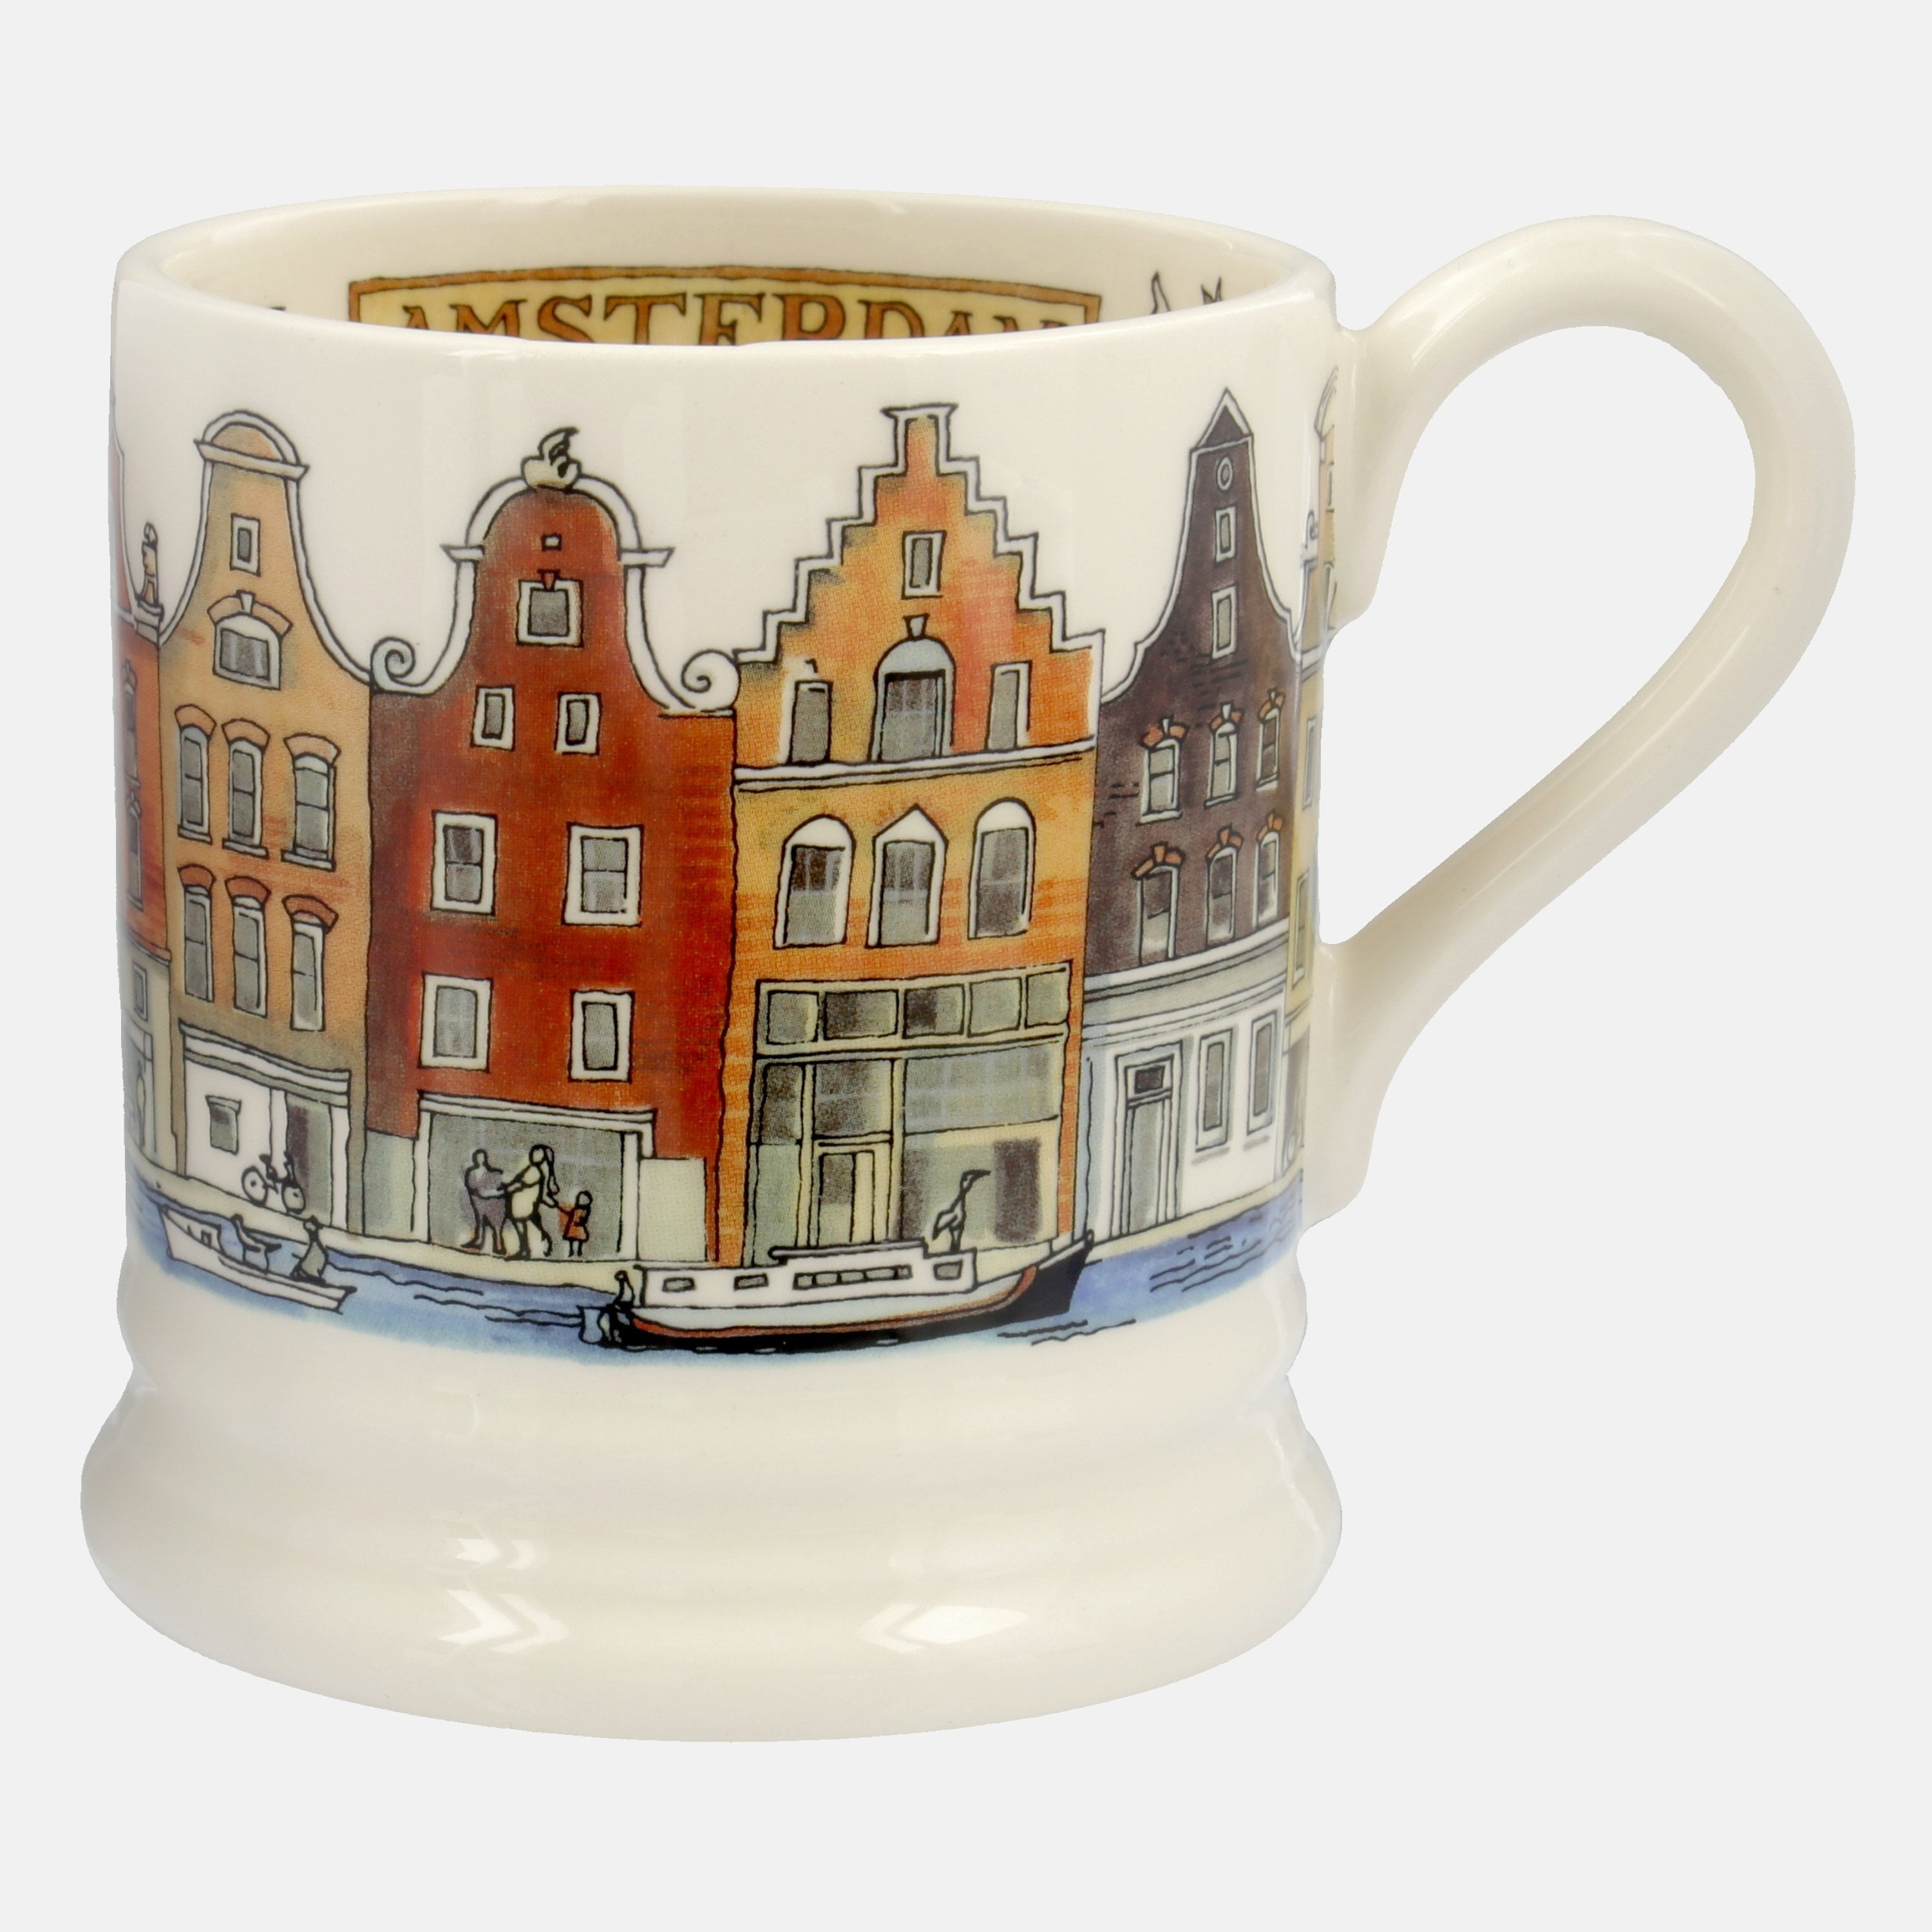 Image of Seconds Amsterdam 1/2 Pint Mug